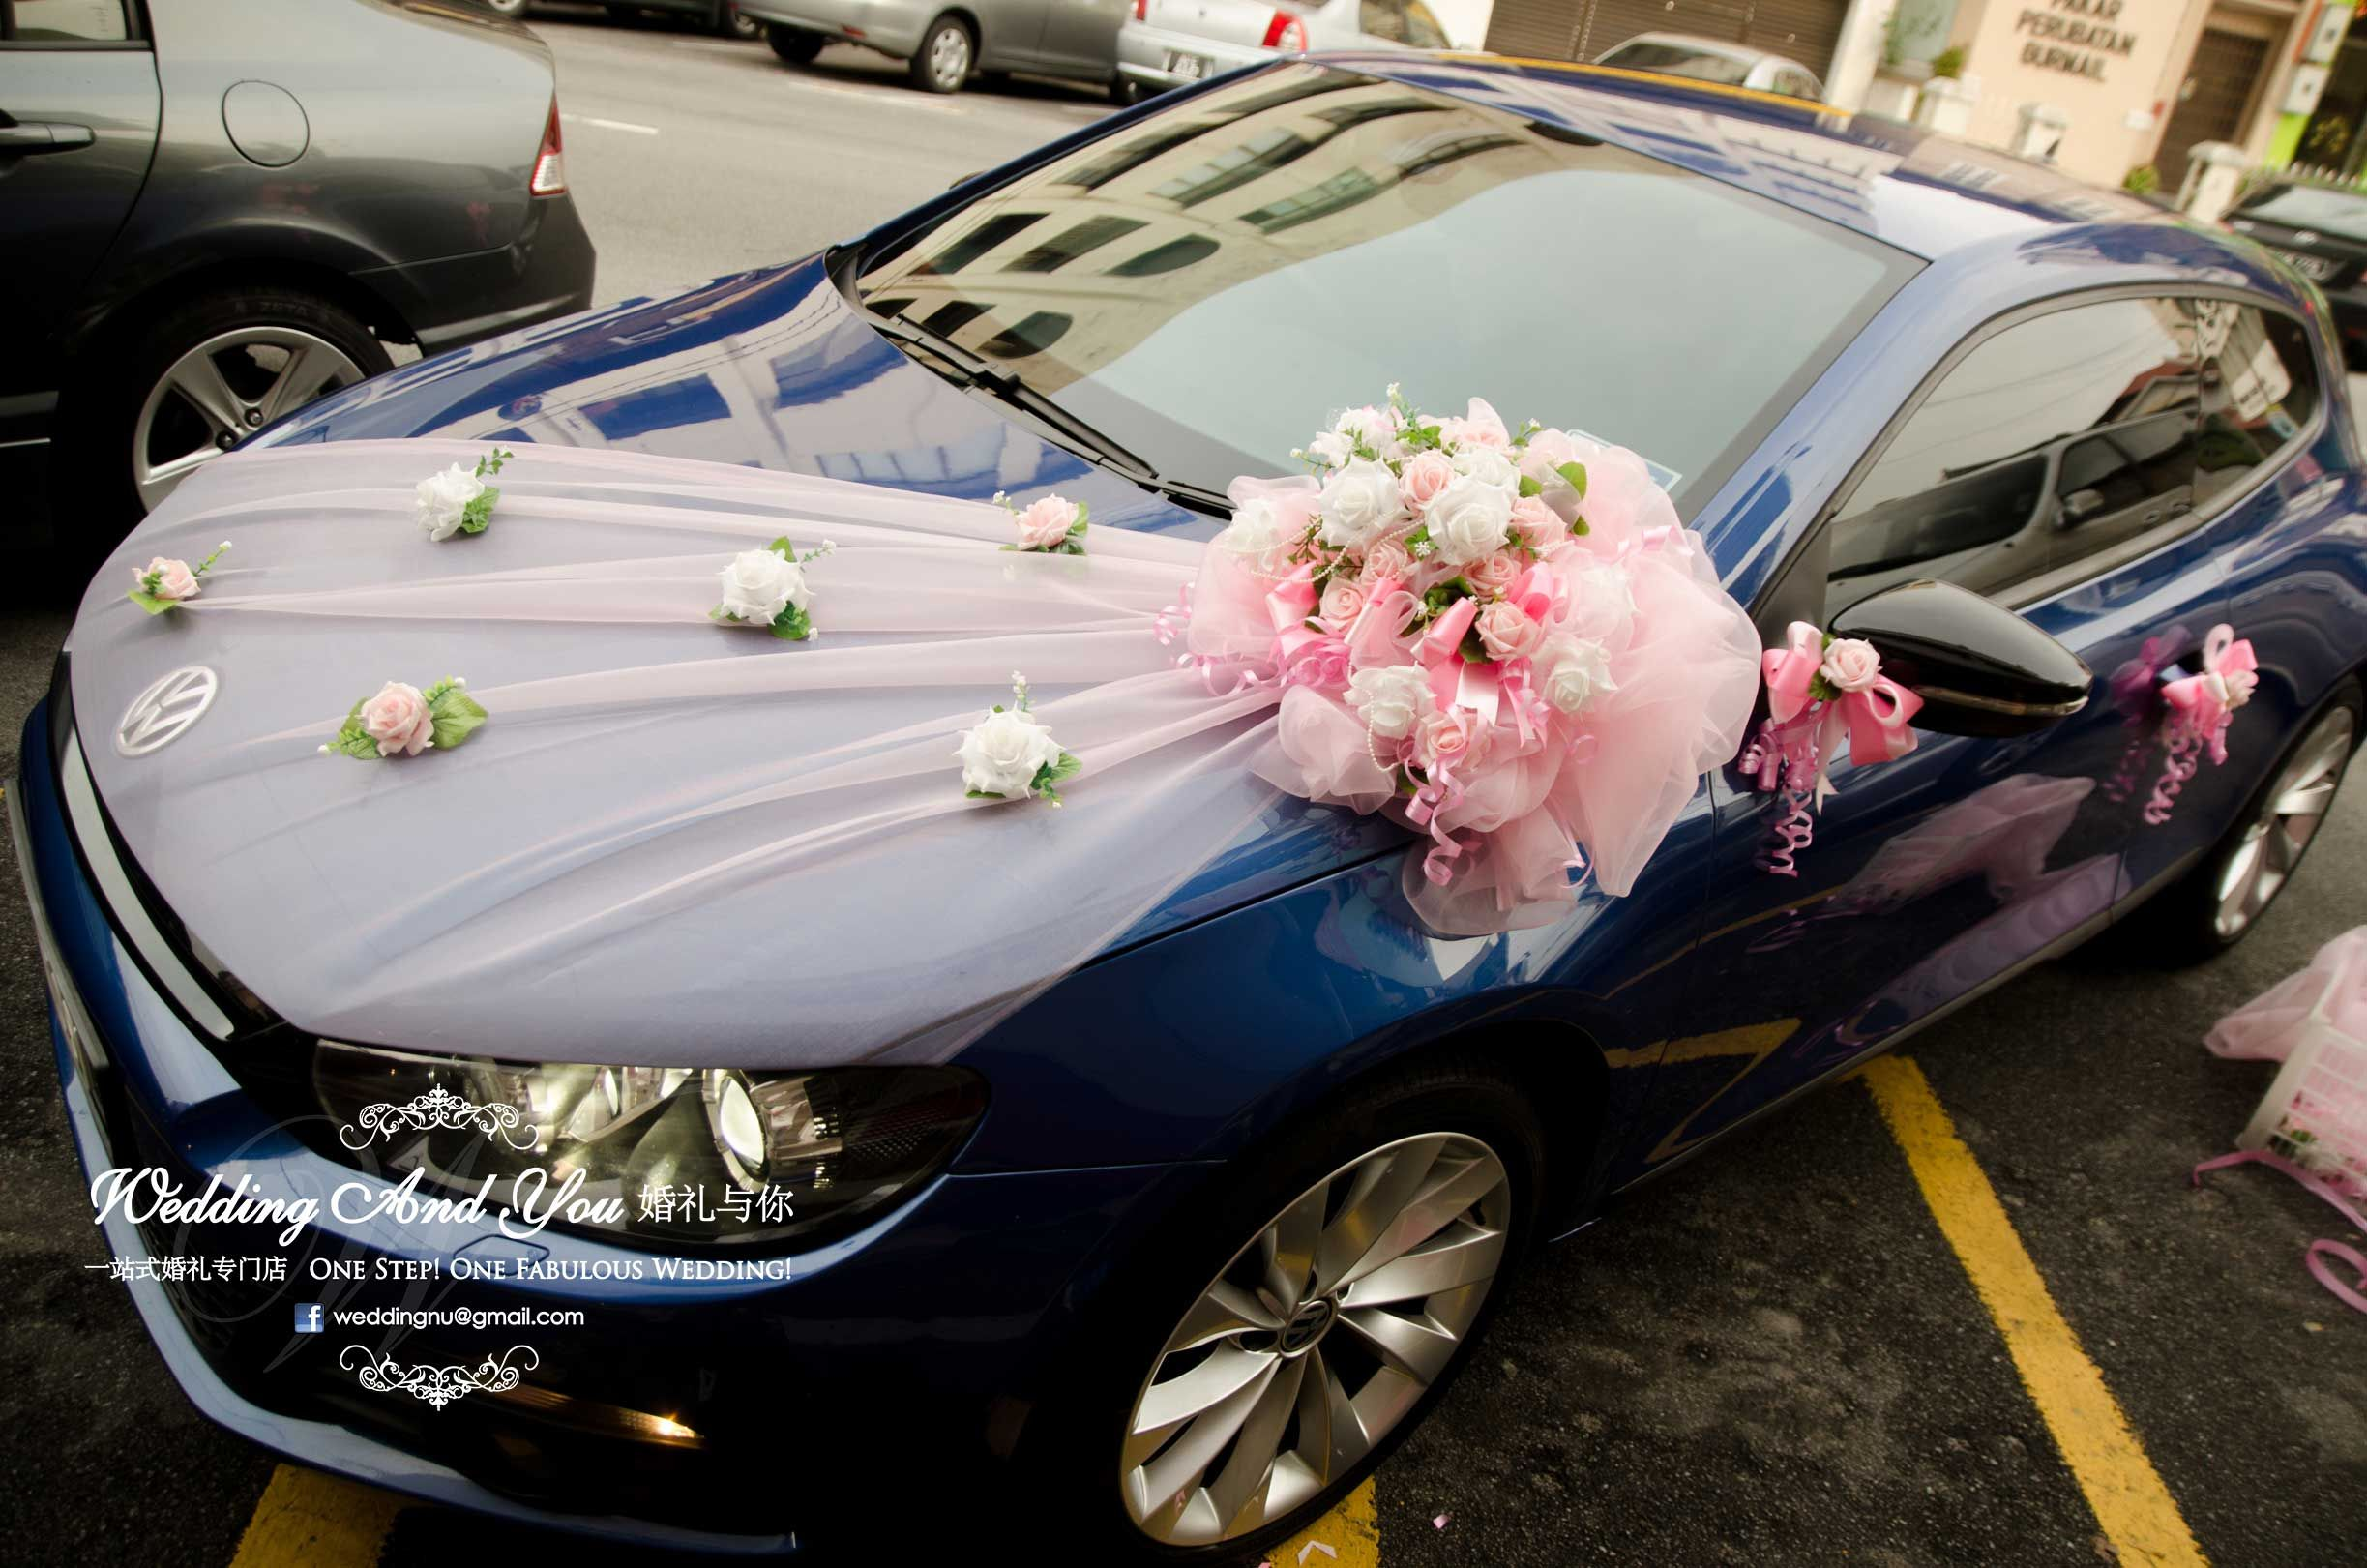 Attention Grabbing Wedding Car Decoration Ideas!